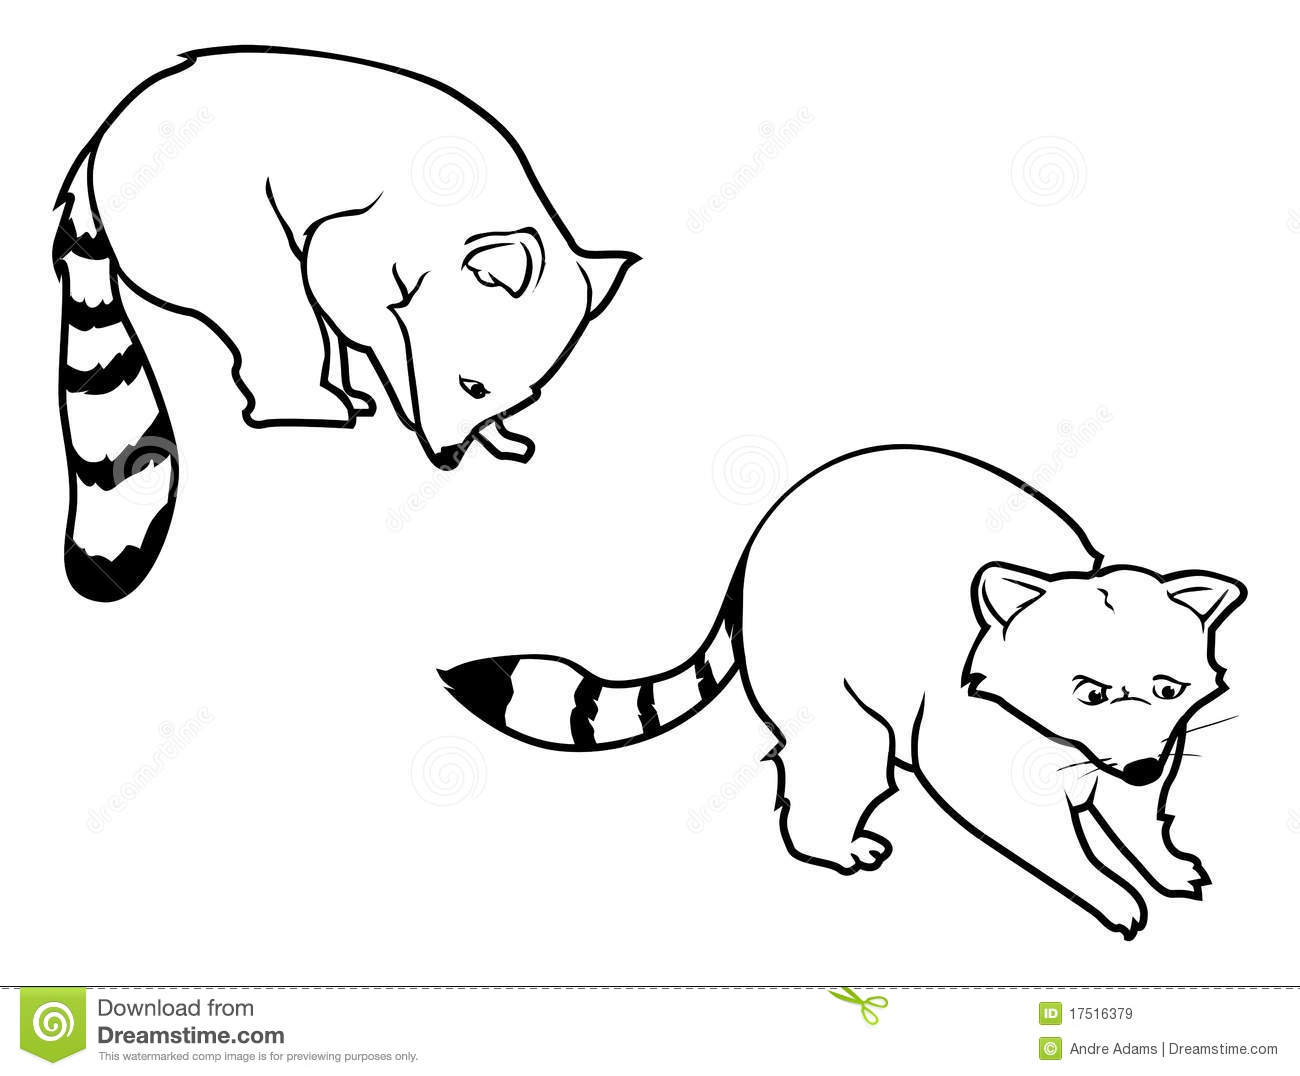 Line Drawing Raccoon : Raccoon outlines stock vector illustration of critter